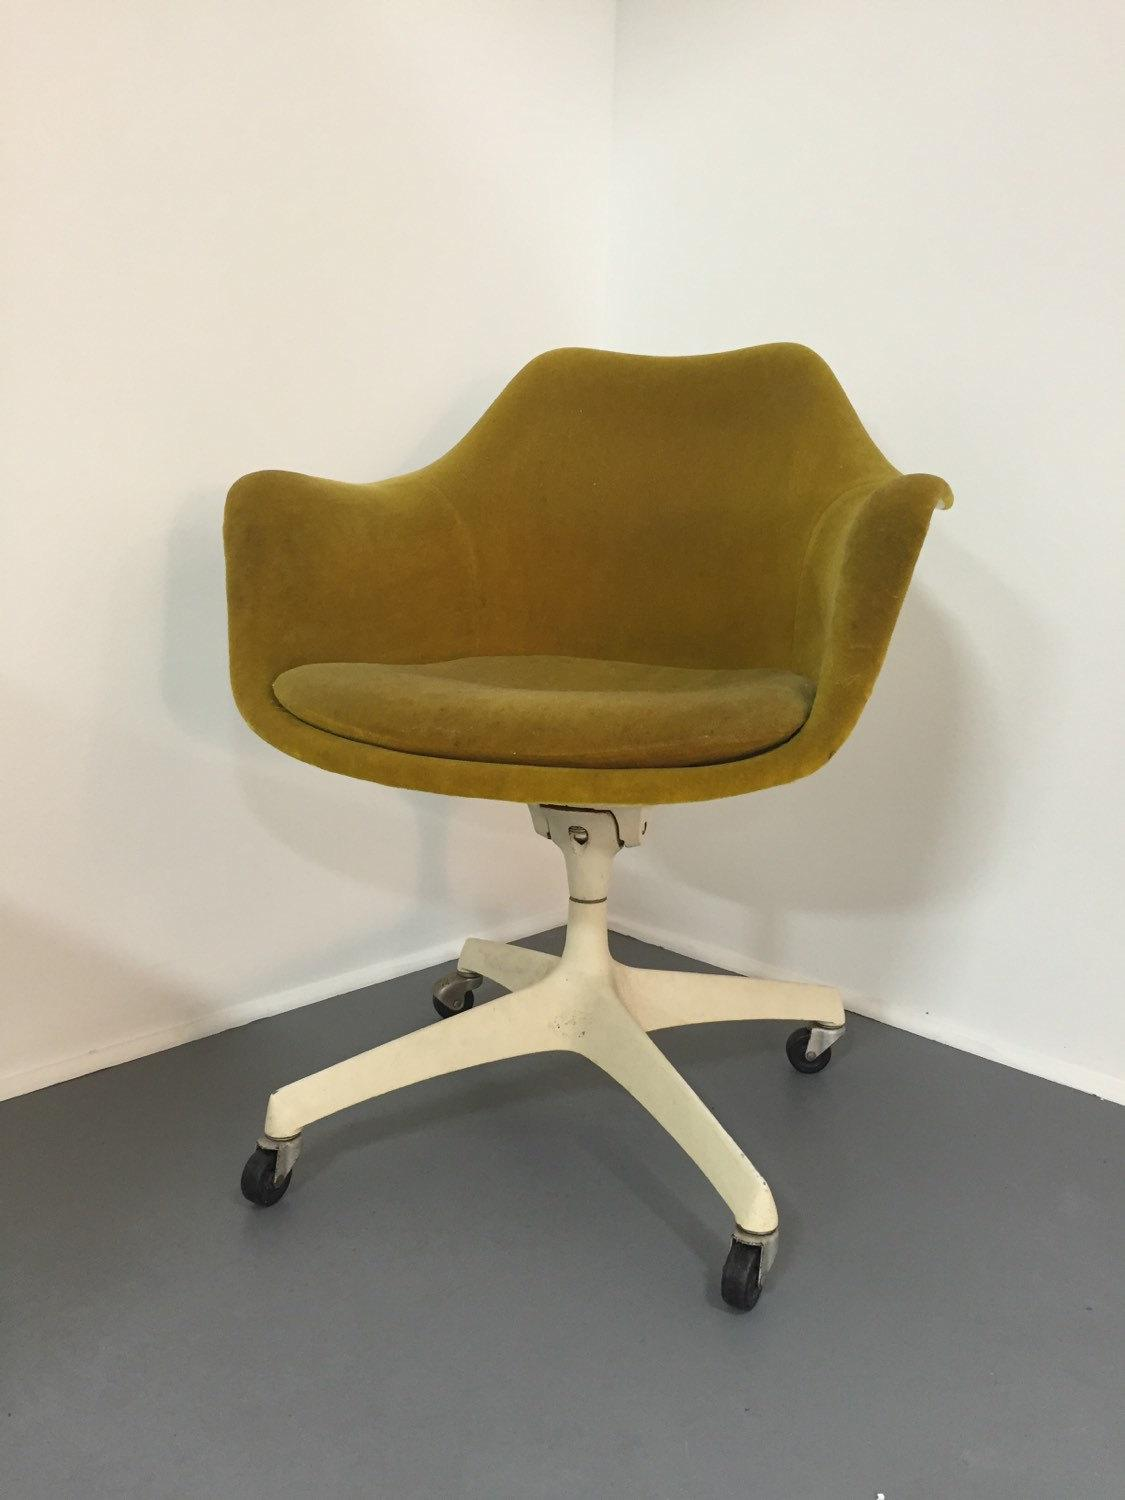 swivel arm chairs fabric chair covers for dining room eero saarinen knoll rare set of 4 chairish four upholstered circa 1960s similar to